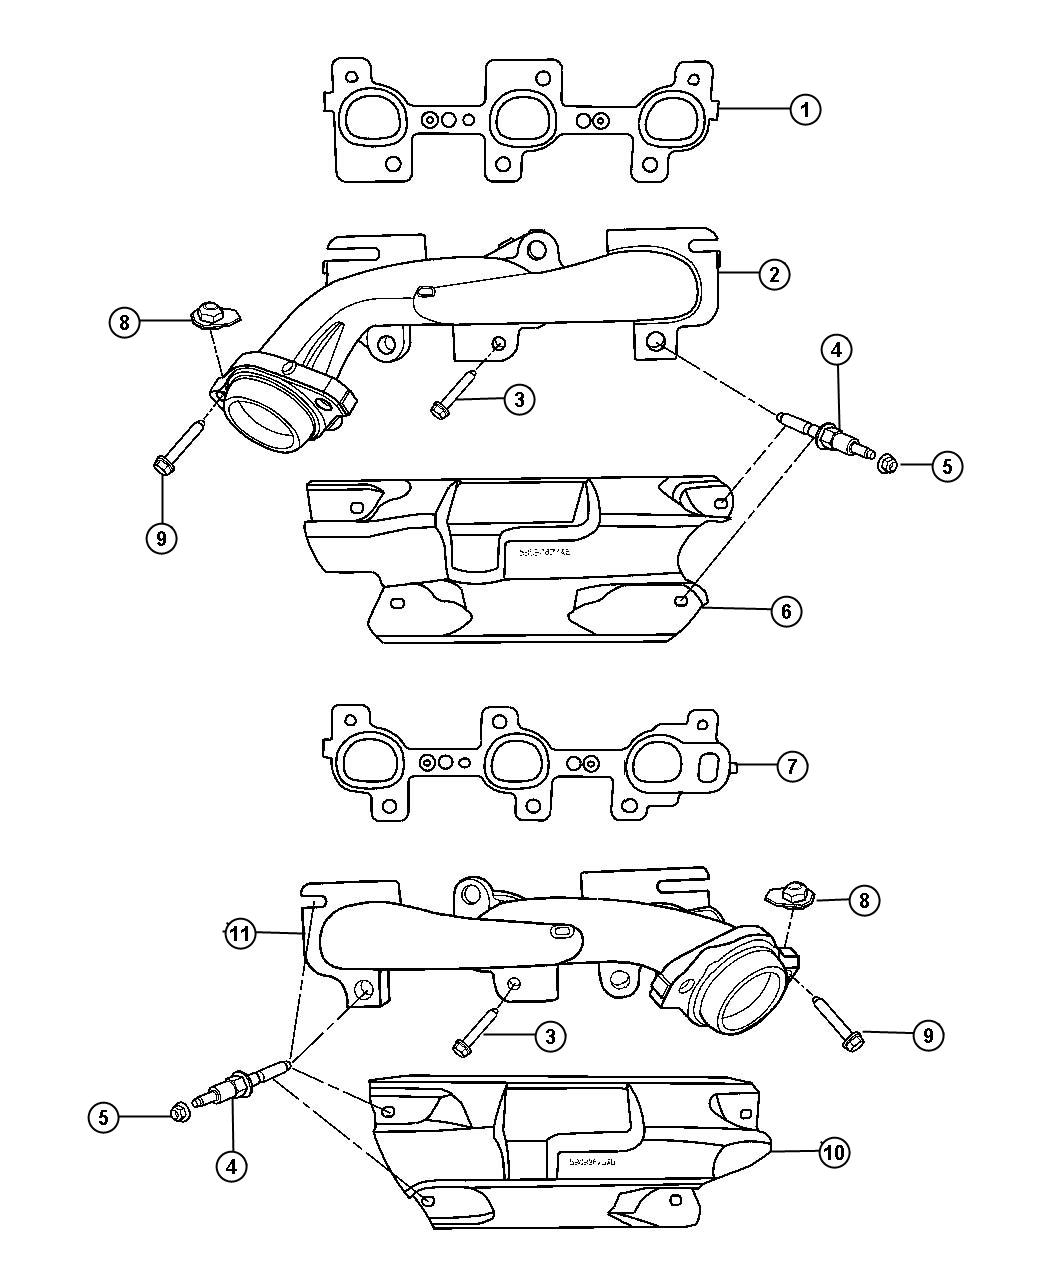 2007 Jeep Grand Cherokee Manifold. Exhaust. Right side